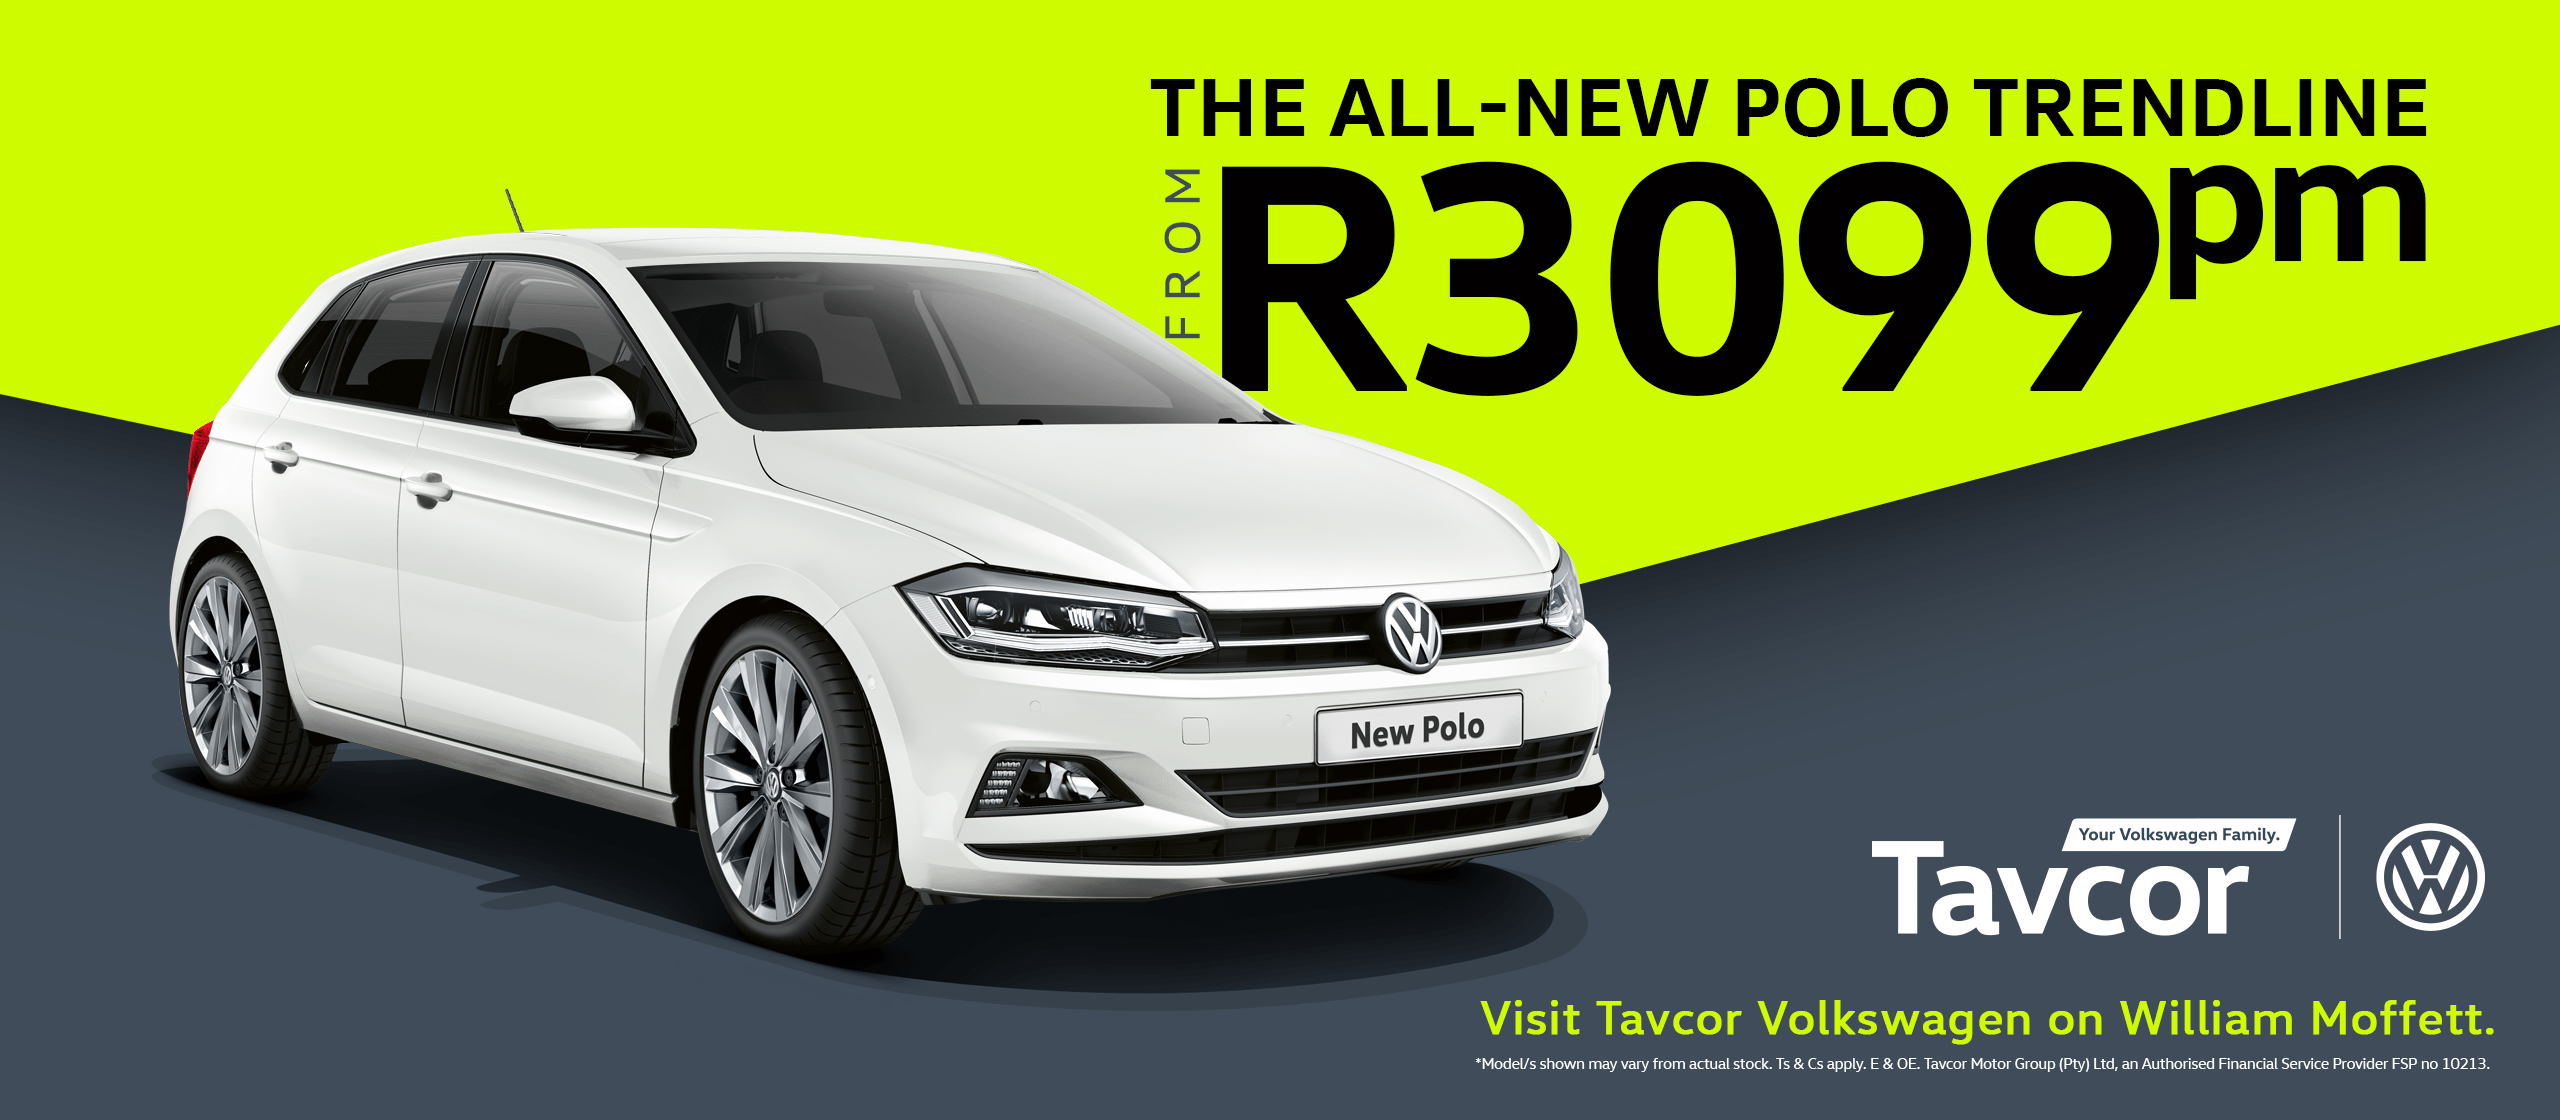 Cars for Sale Under 10000 In Cape town Best Of Tavcor Motor Group Vw Audi Suzuki Port Elizabeth